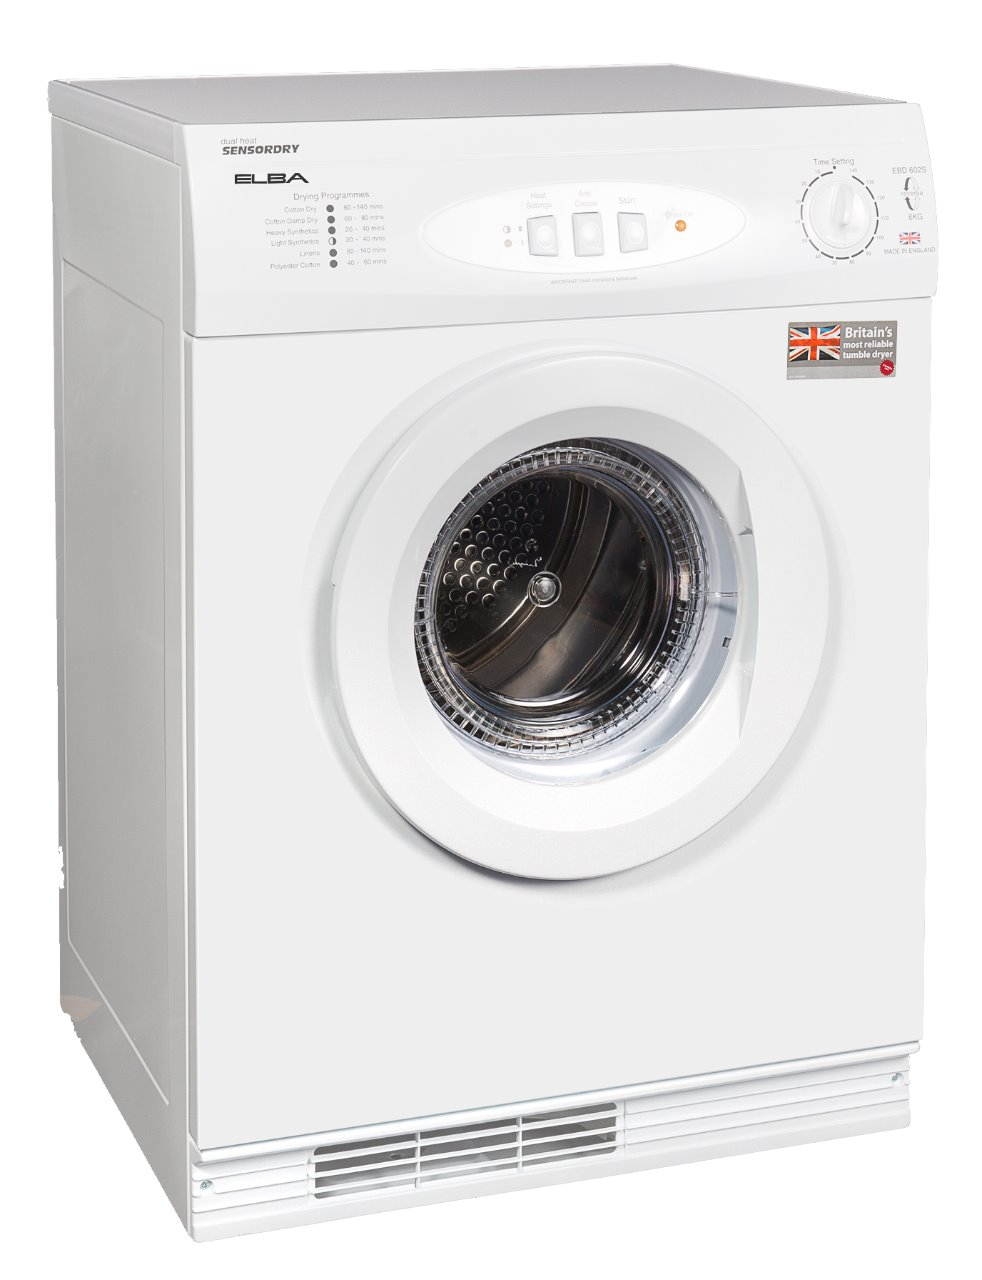 Tumble Dryer And Washing Combined Machine ~ Washer dryer deal deals washing machines tumble amp